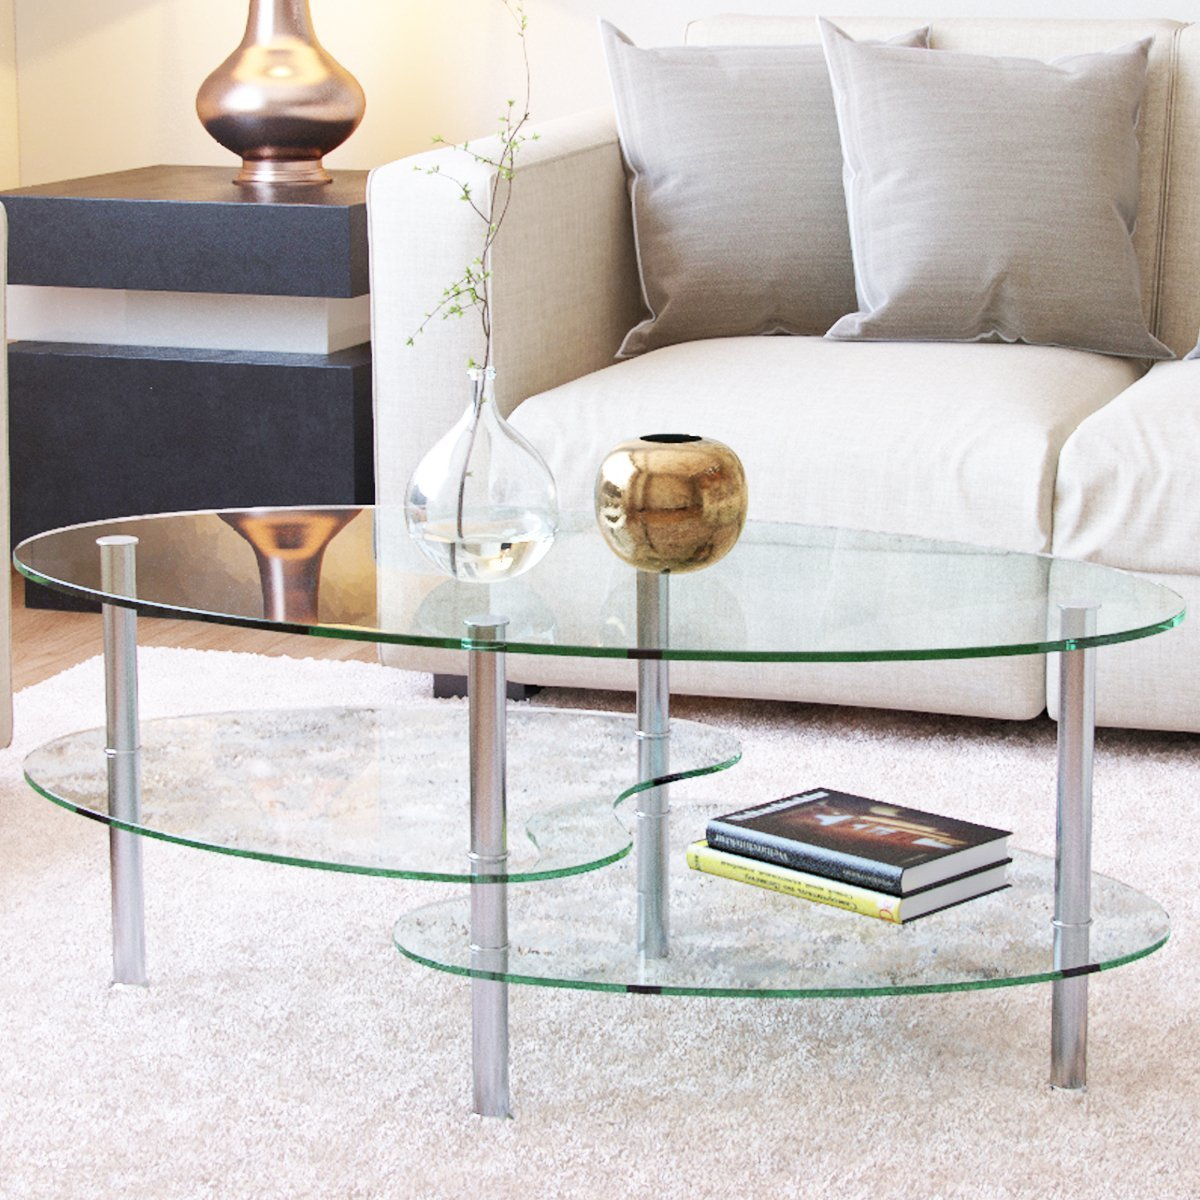 Ryan Rove Ashley - Oval Two Tier Glass Coffee Table - Coffee Tables for  Living Room, Kitchen, Bedroom – Office - Glass Shelves Under Desk Storage -  ...